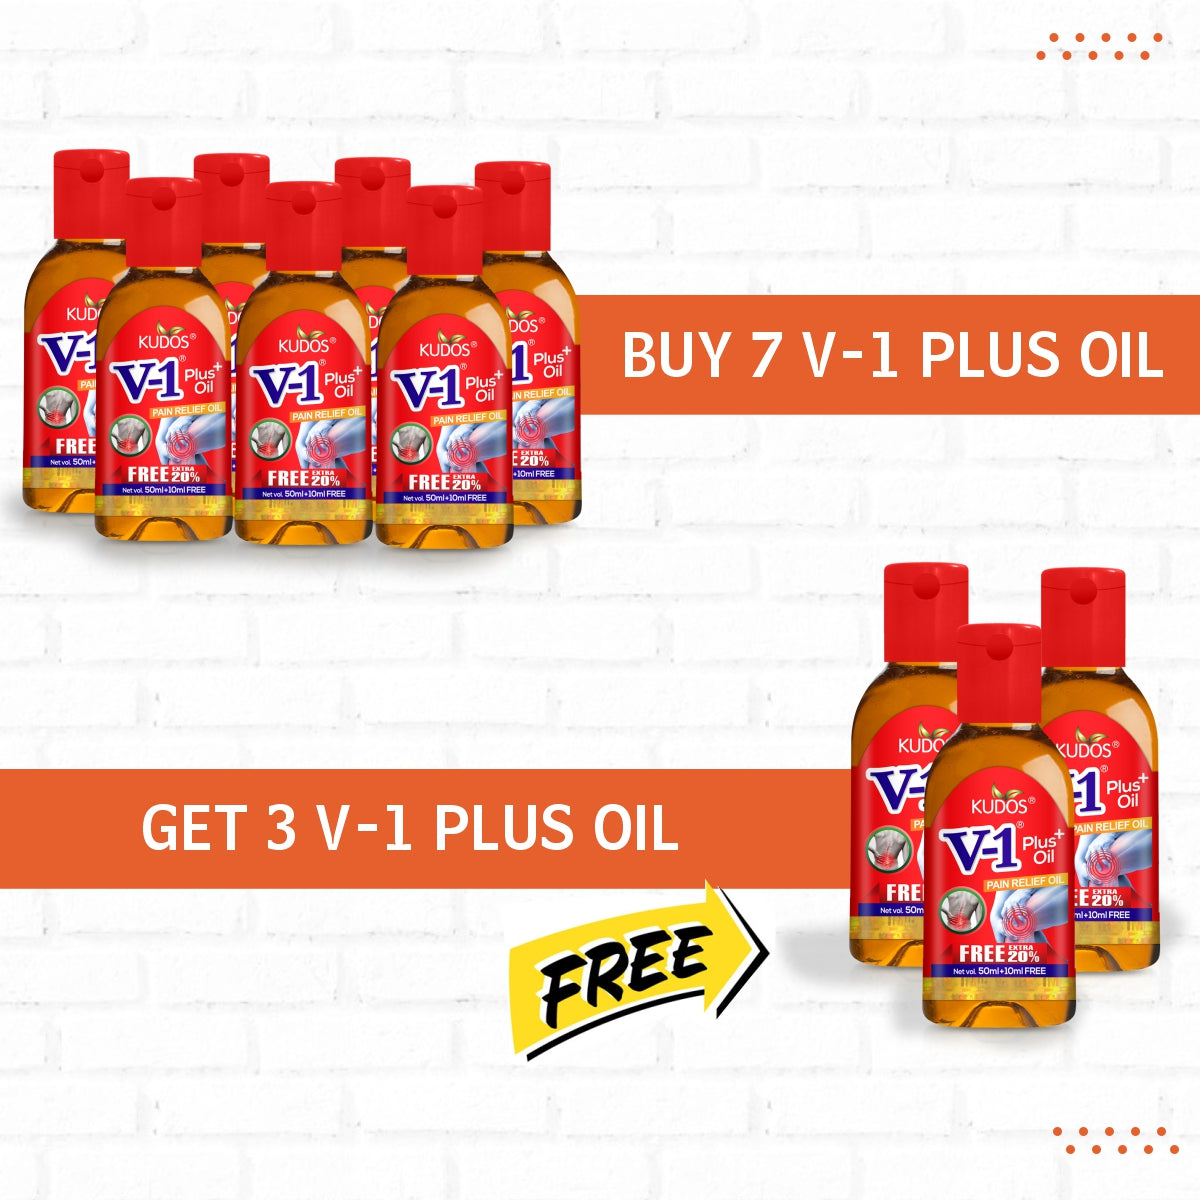 Buy 7 V-1 Plus Oil & Get 3 V-1 Plus Oil Free